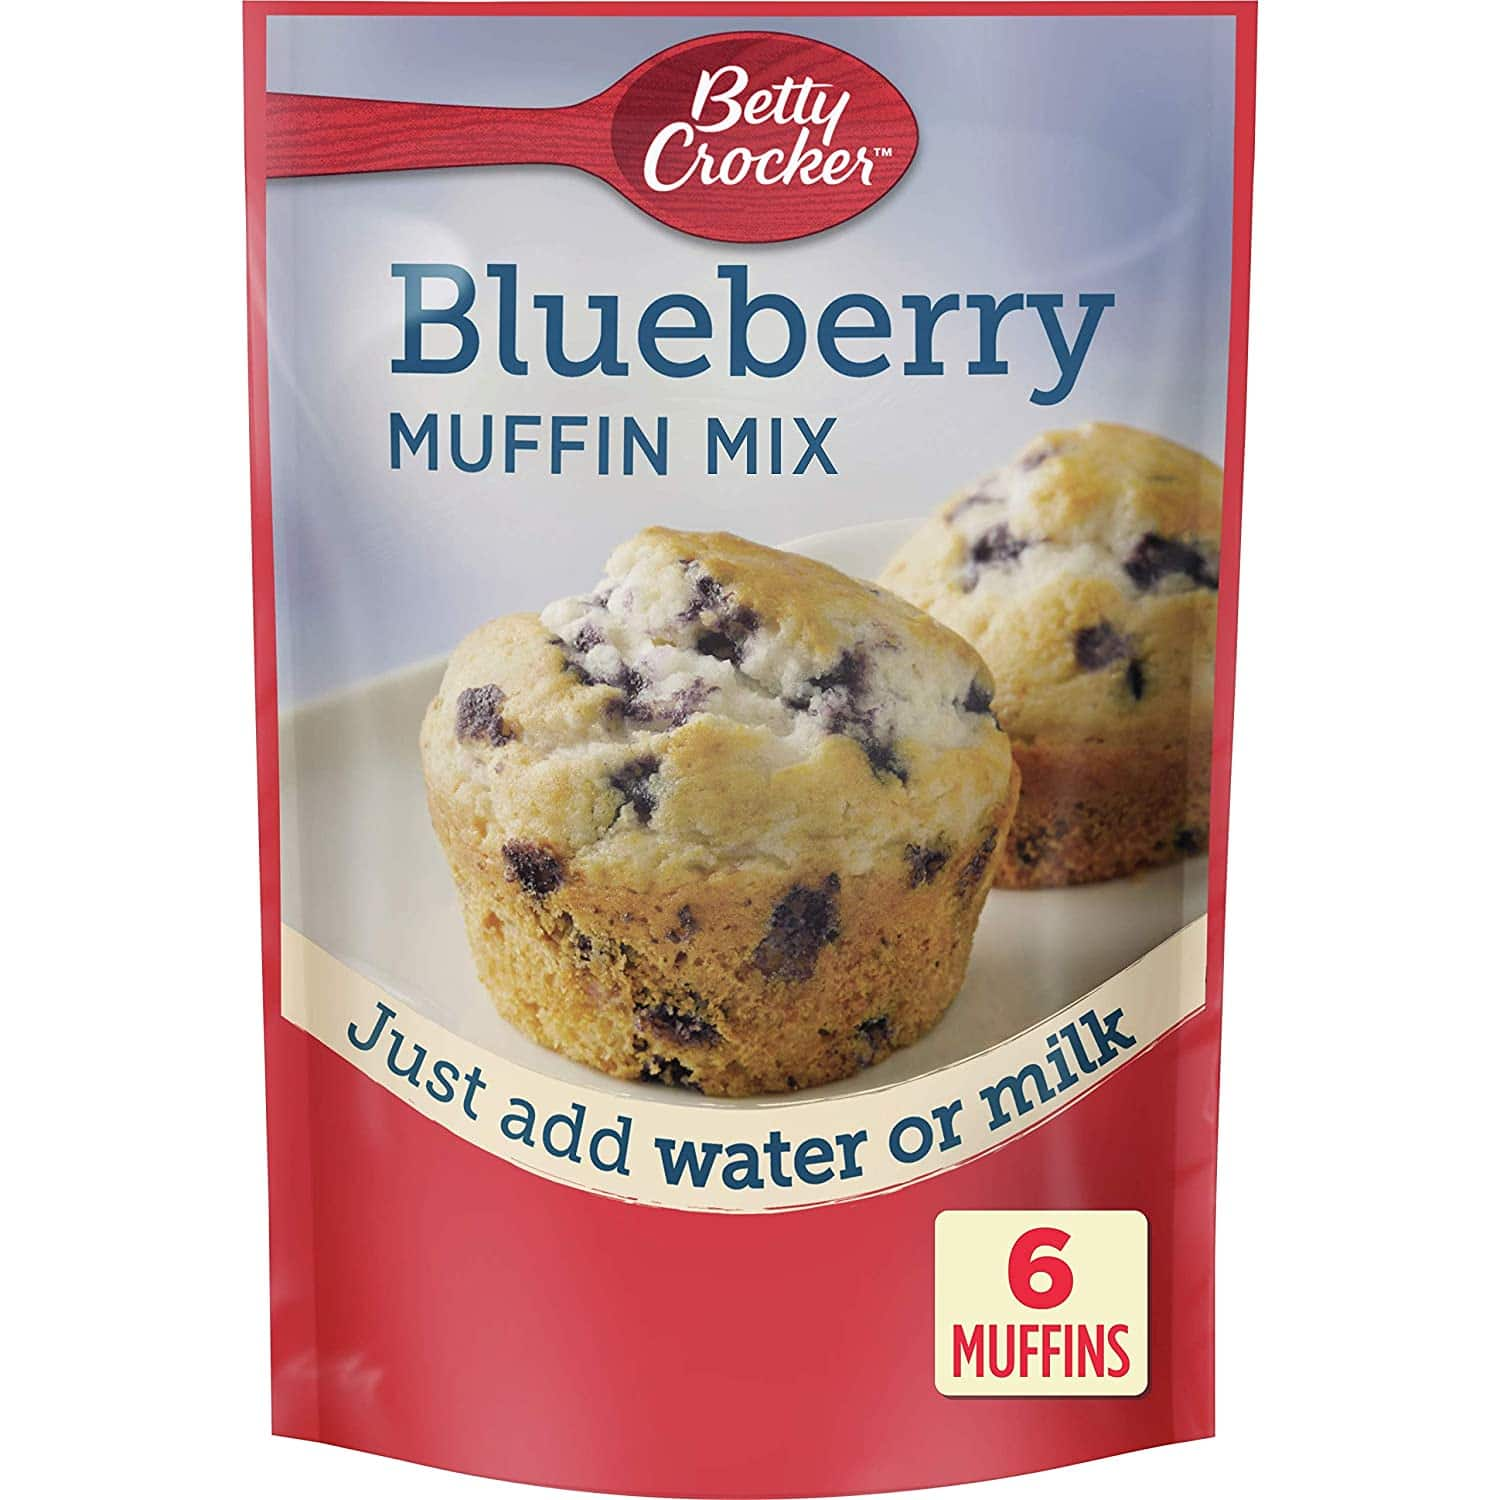 9-Pack 6.5-Oz Betty Crocker Muffin Mix (Blueberry) $5.19 w/ S&S + Free Shipping w/ Prime or on $25+